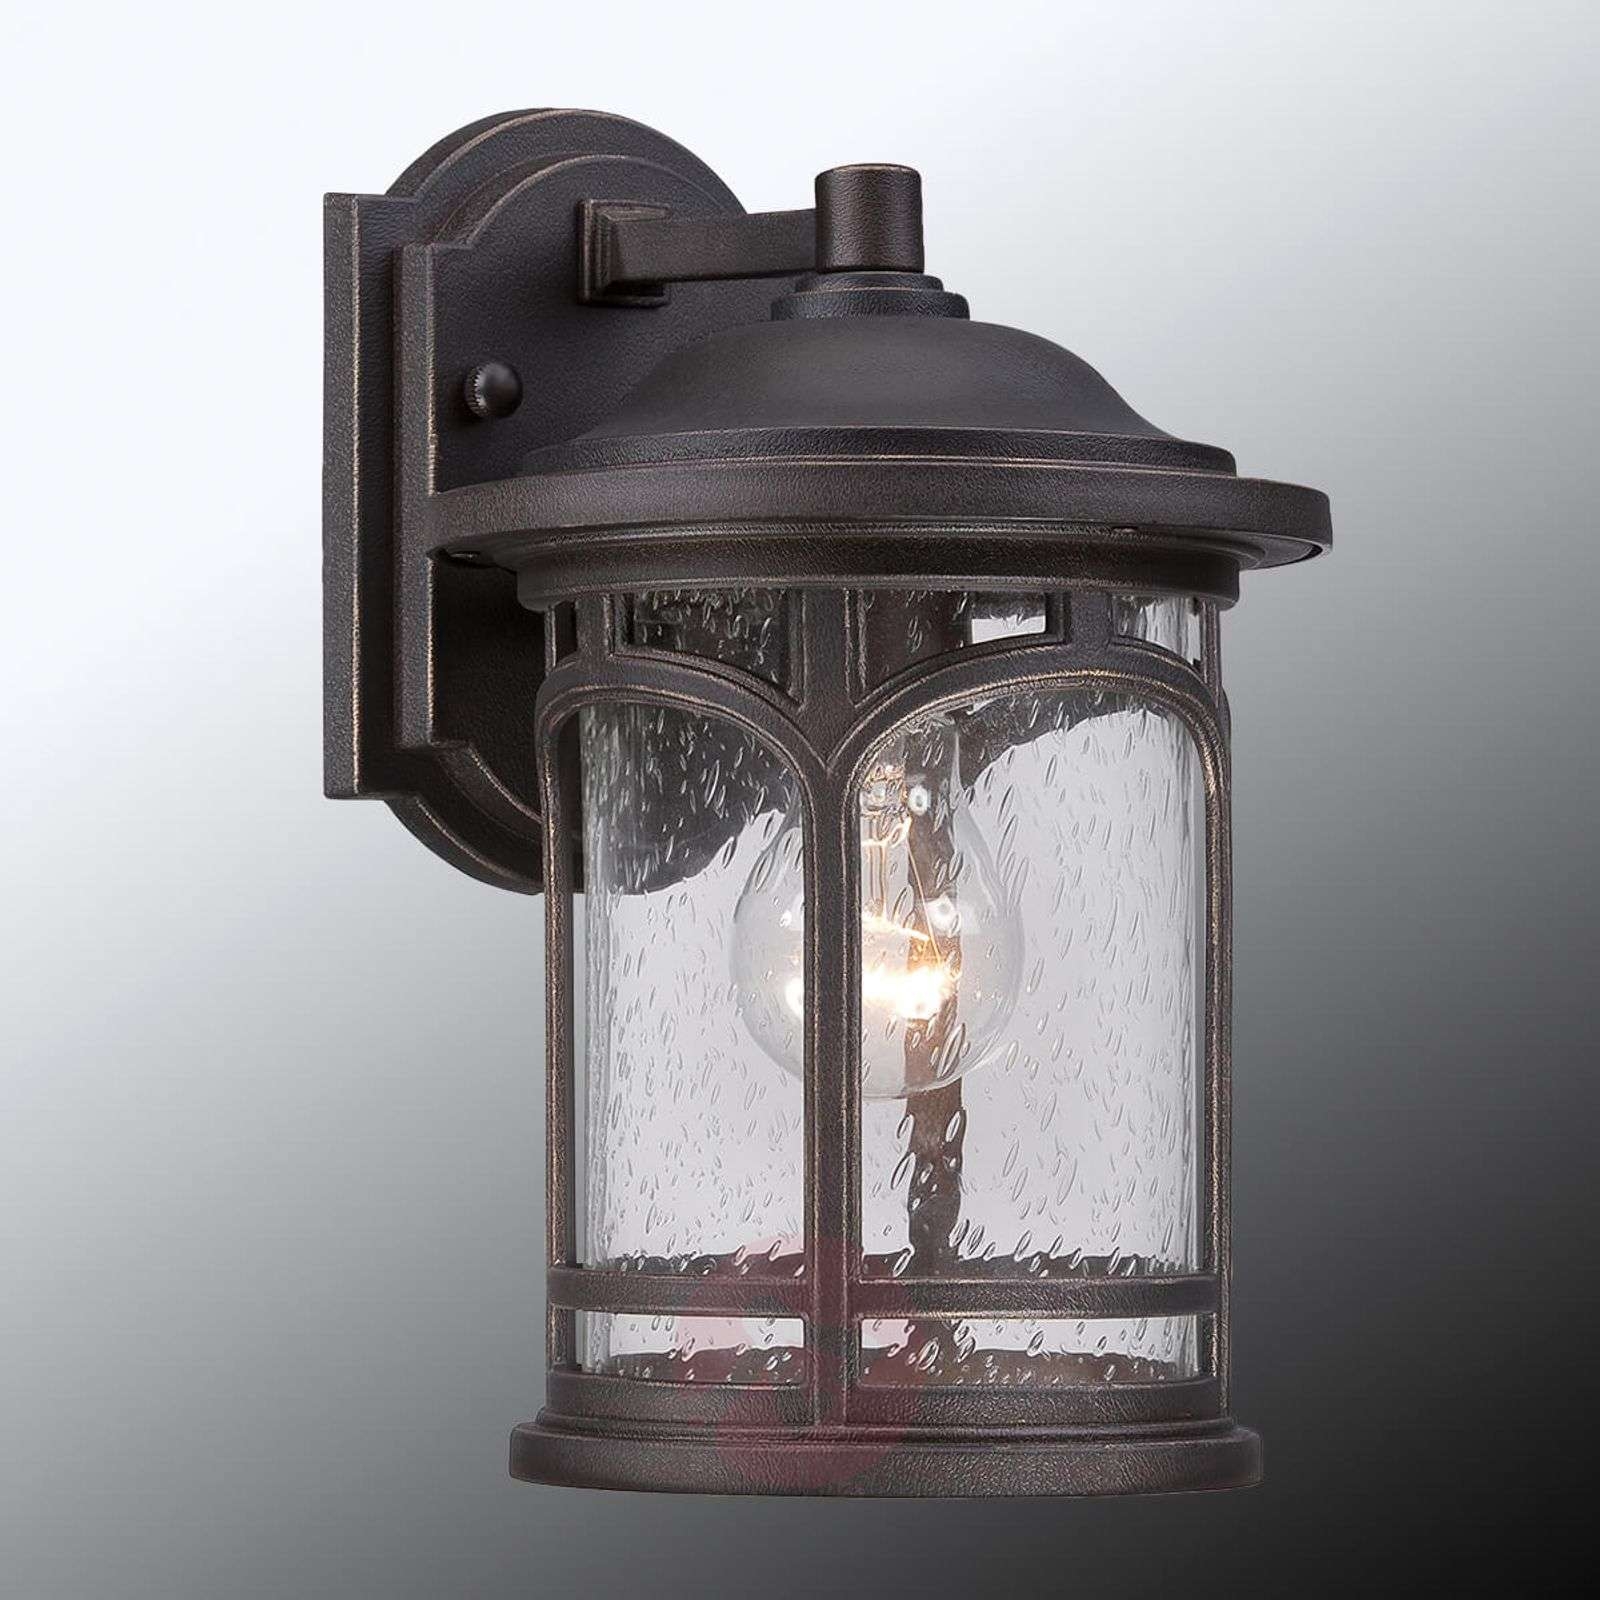 Marblehead small wall light for outdoors-3048824-01